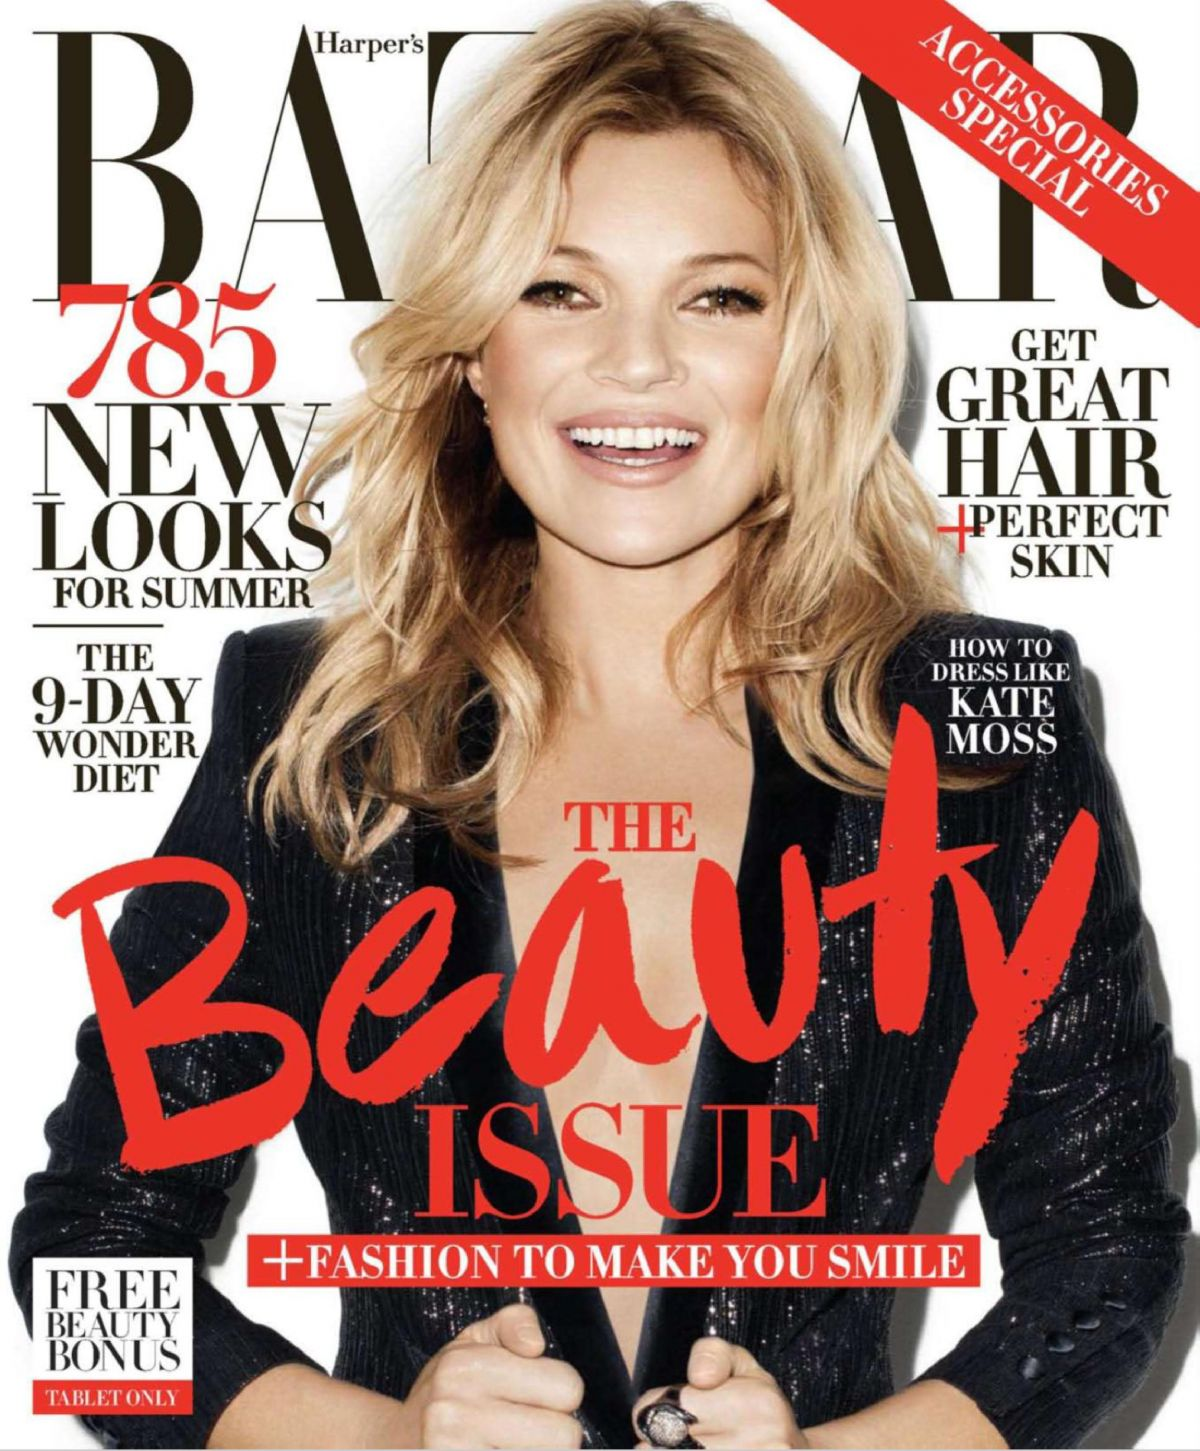 KATE MOSS in Harpers Bazaar Magazine, May 2014 Issue - HawtCelebs - Hawt...